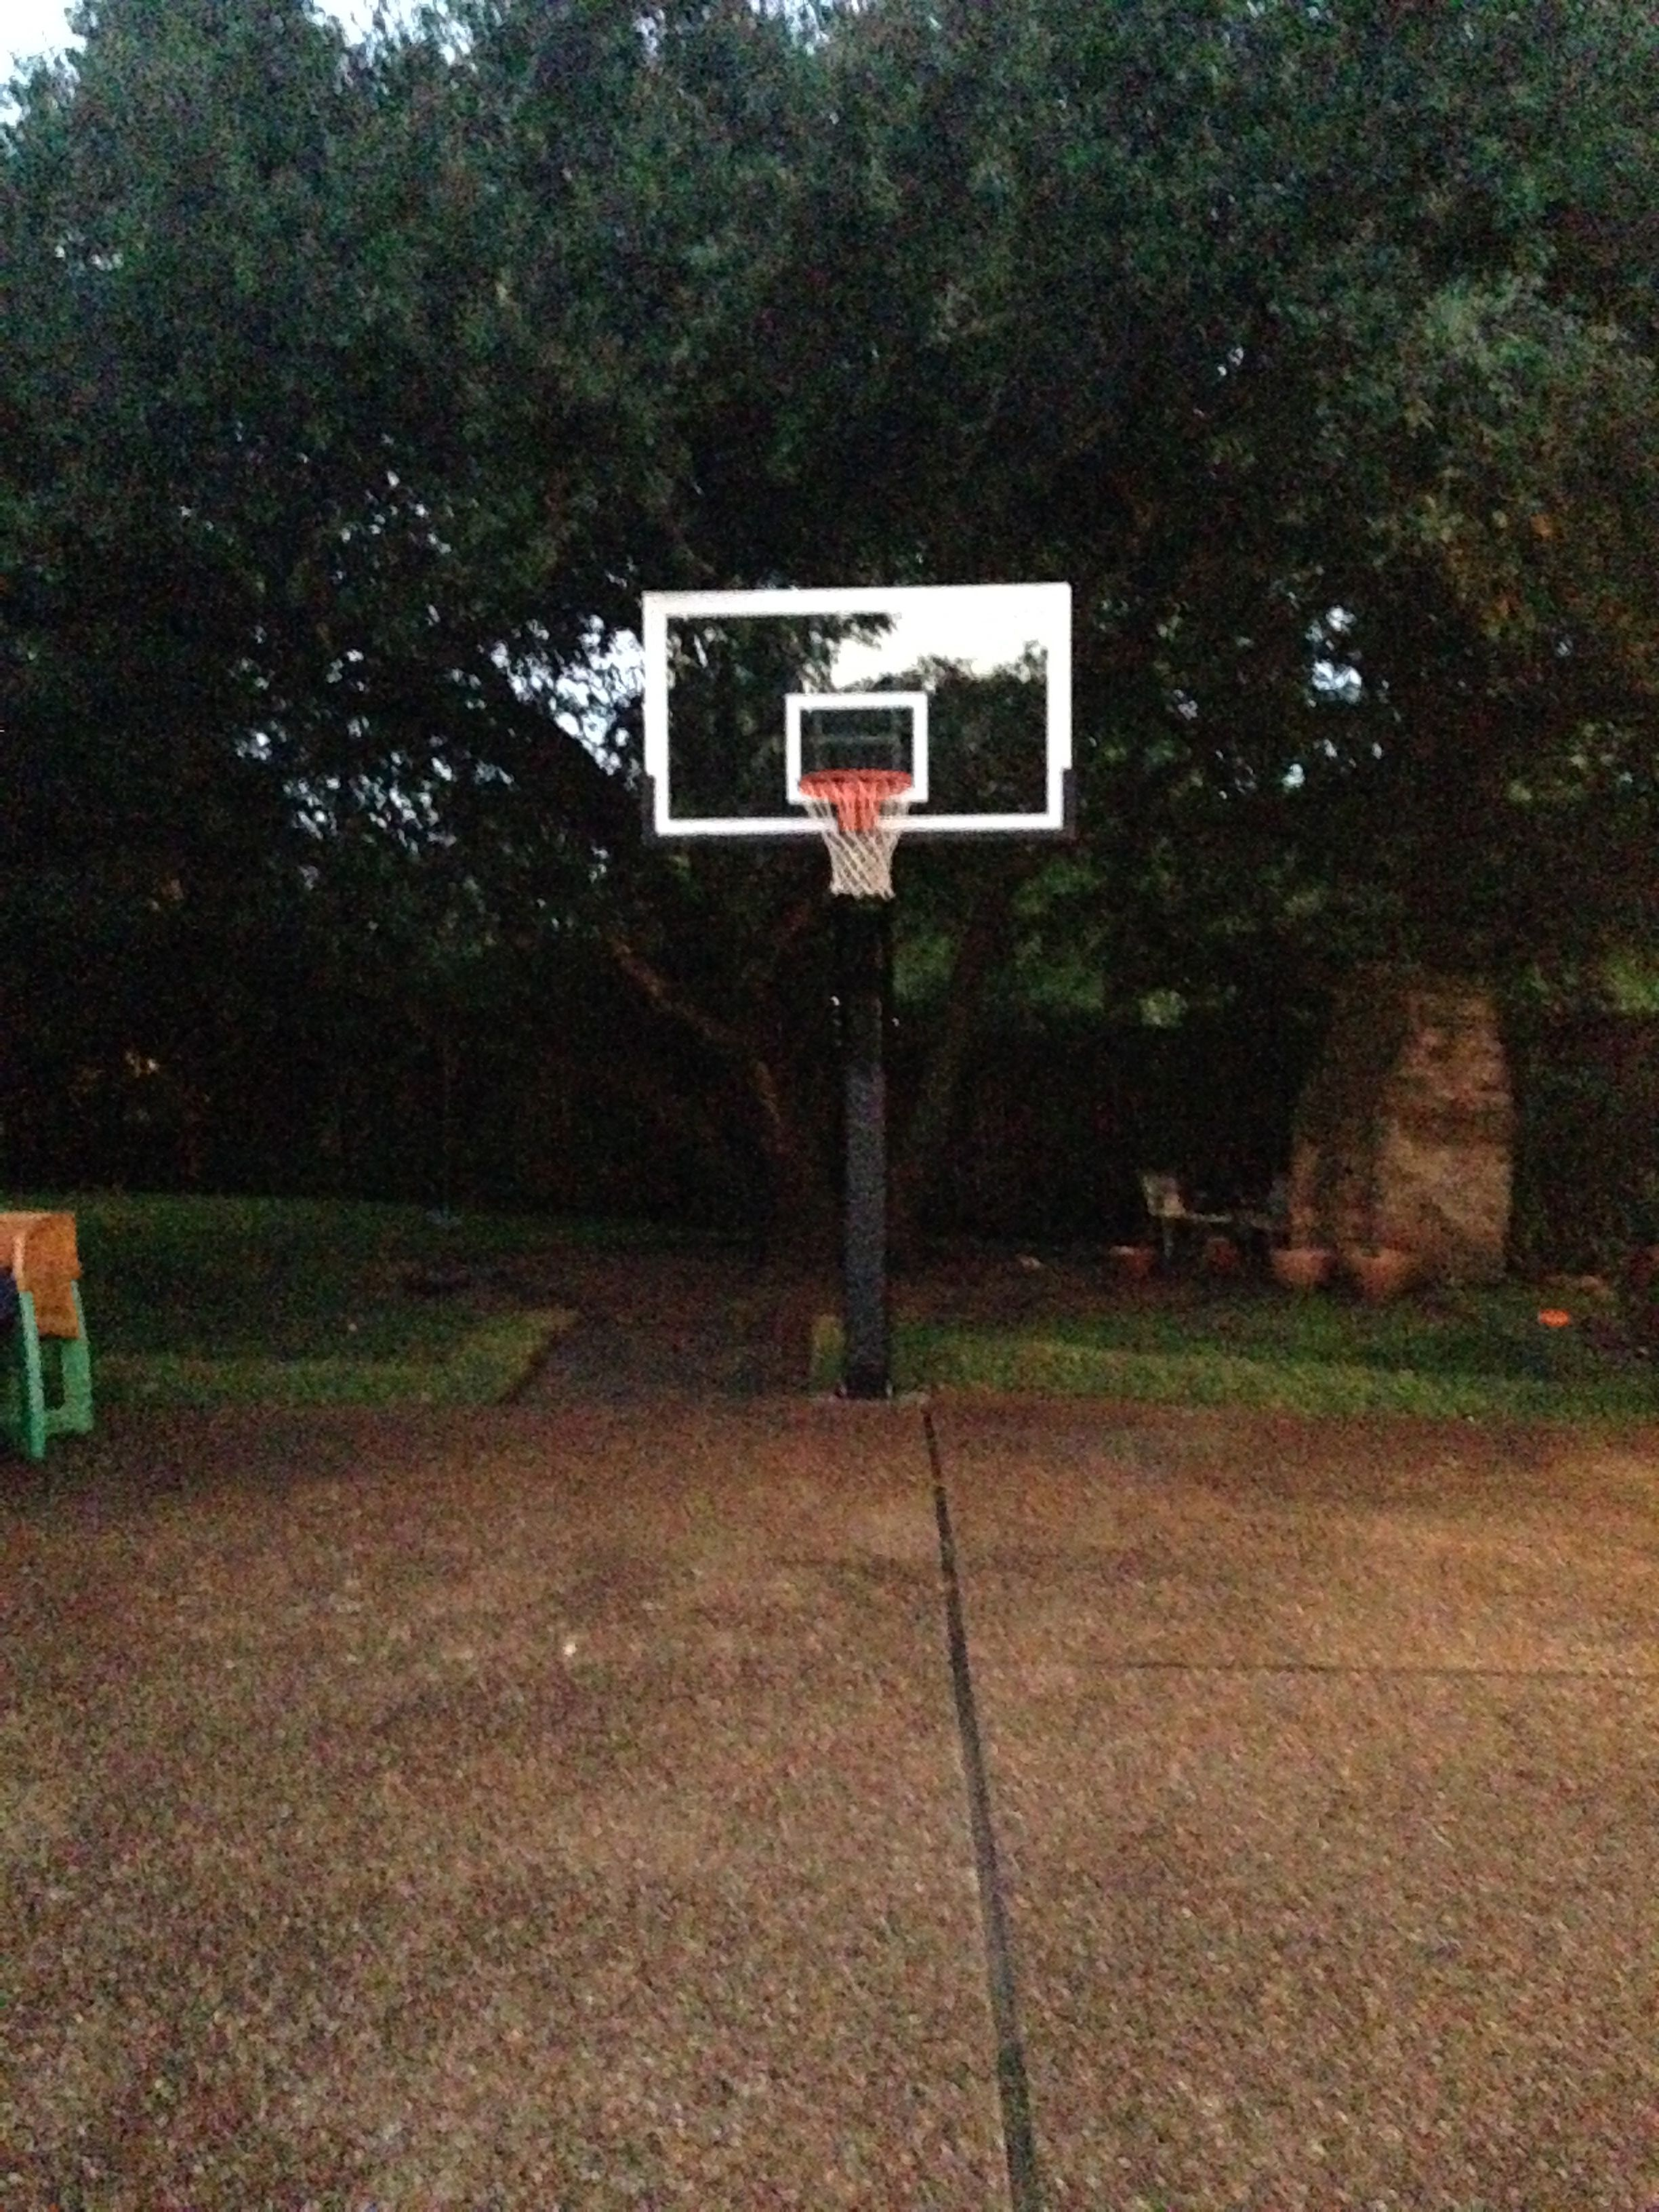 rain or shine this pro dunk platinum basketball system will stand